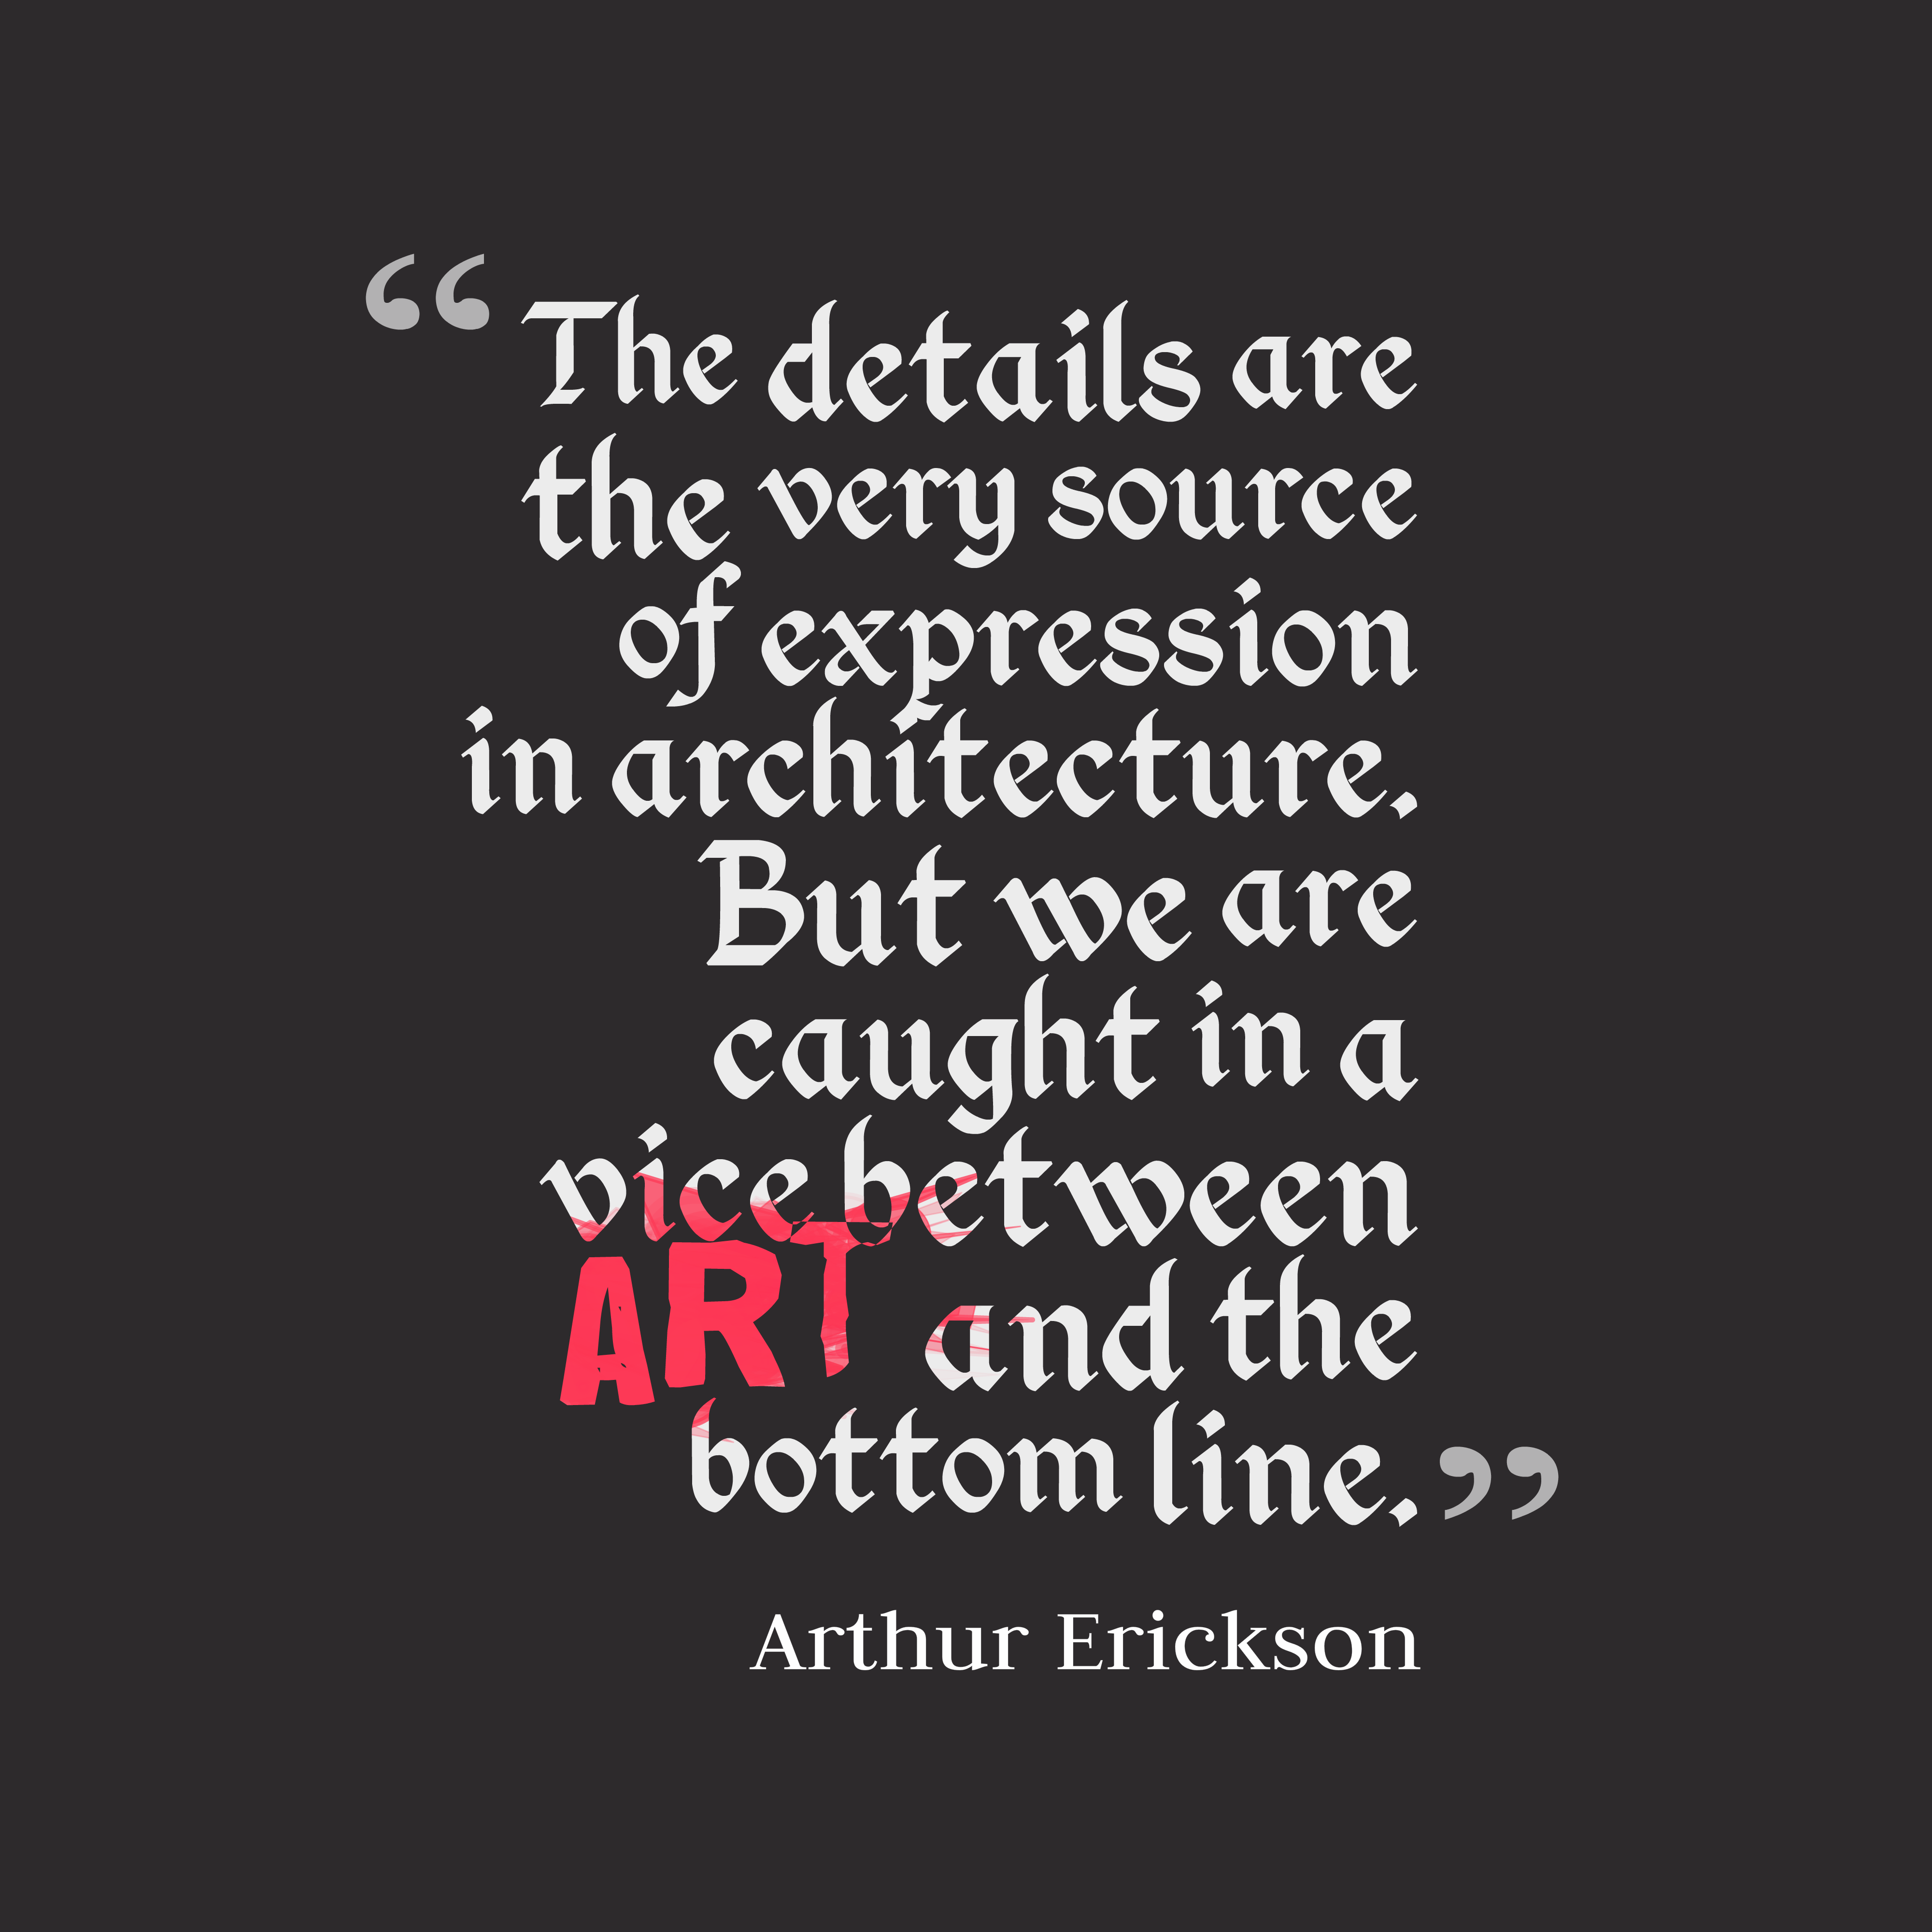 Quotes image of The details are the very source of expression in architecture. But we are caught in a vice between art and the bottom line.